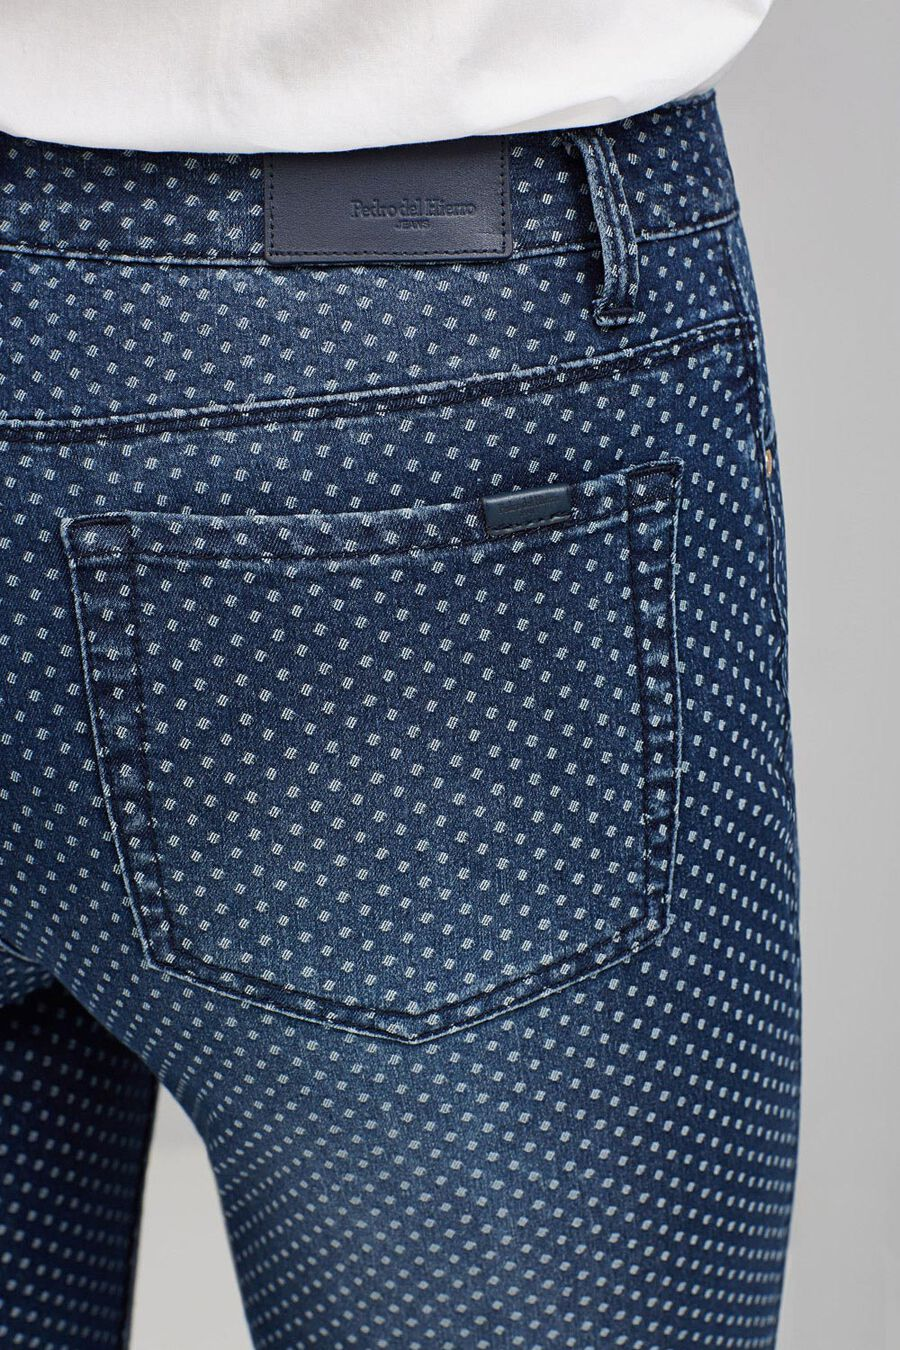 Jacquard skinny denim trousers